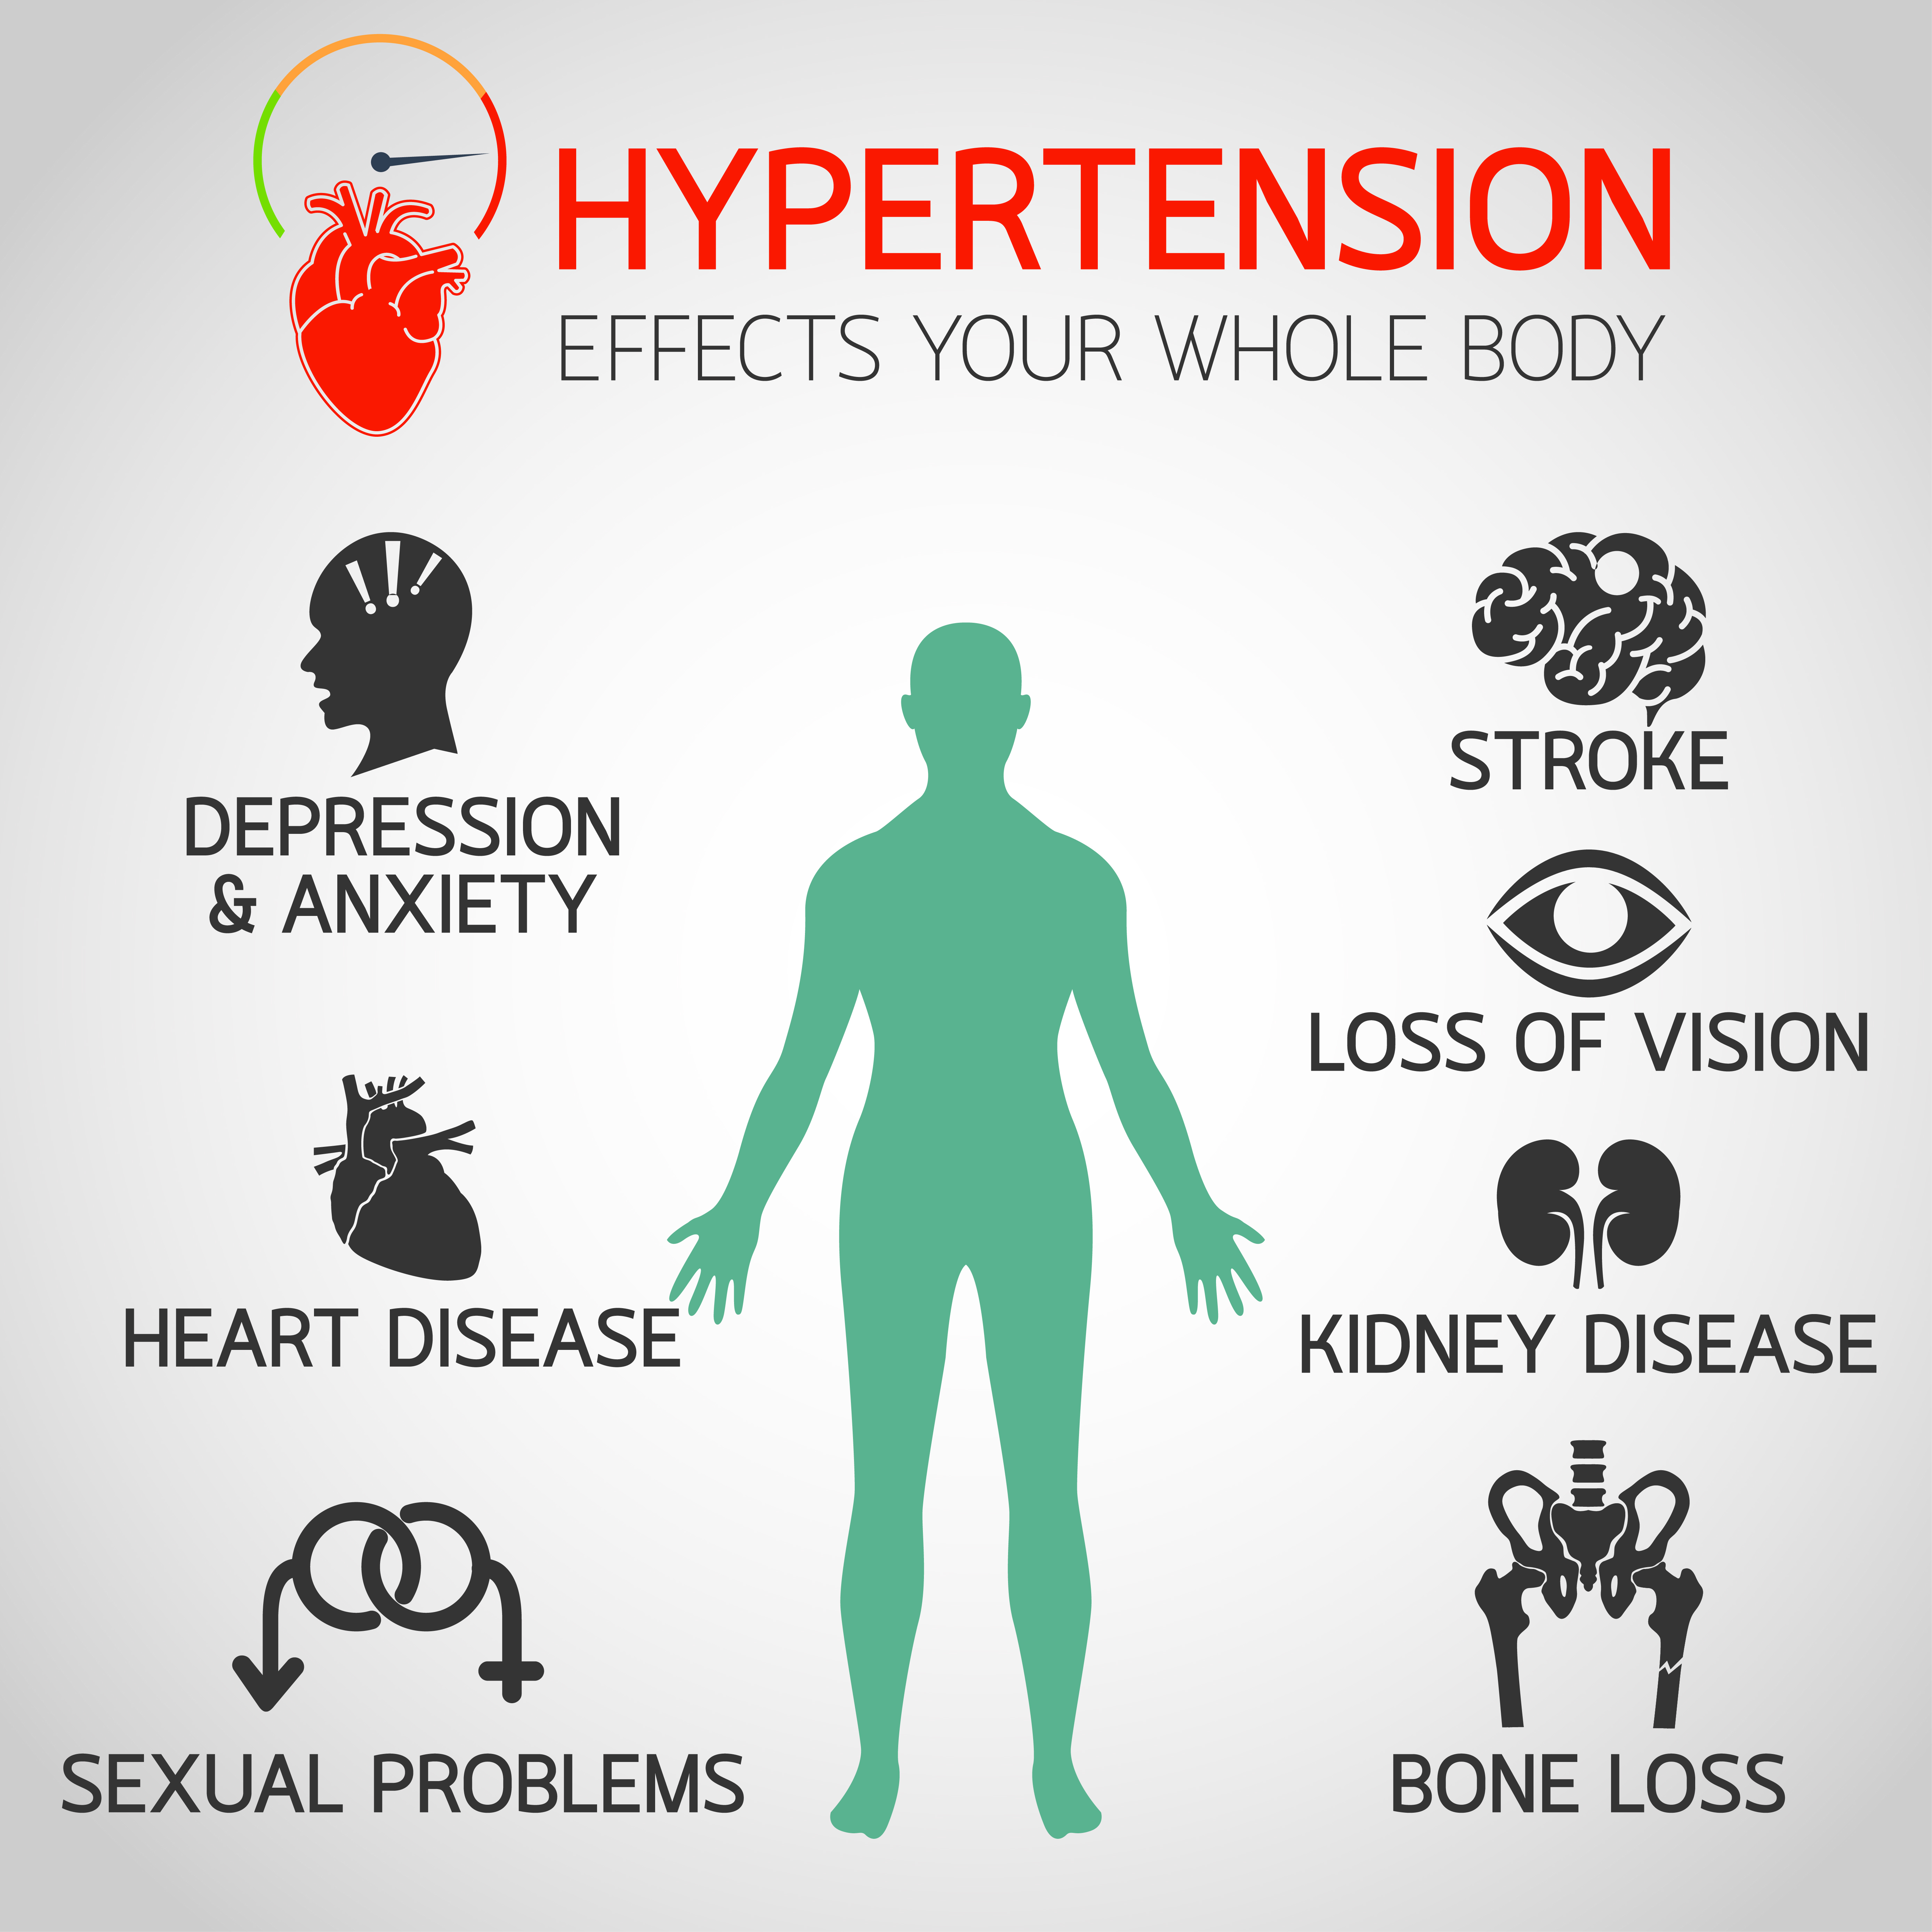 Hypertension can lead to drastic outcomes!